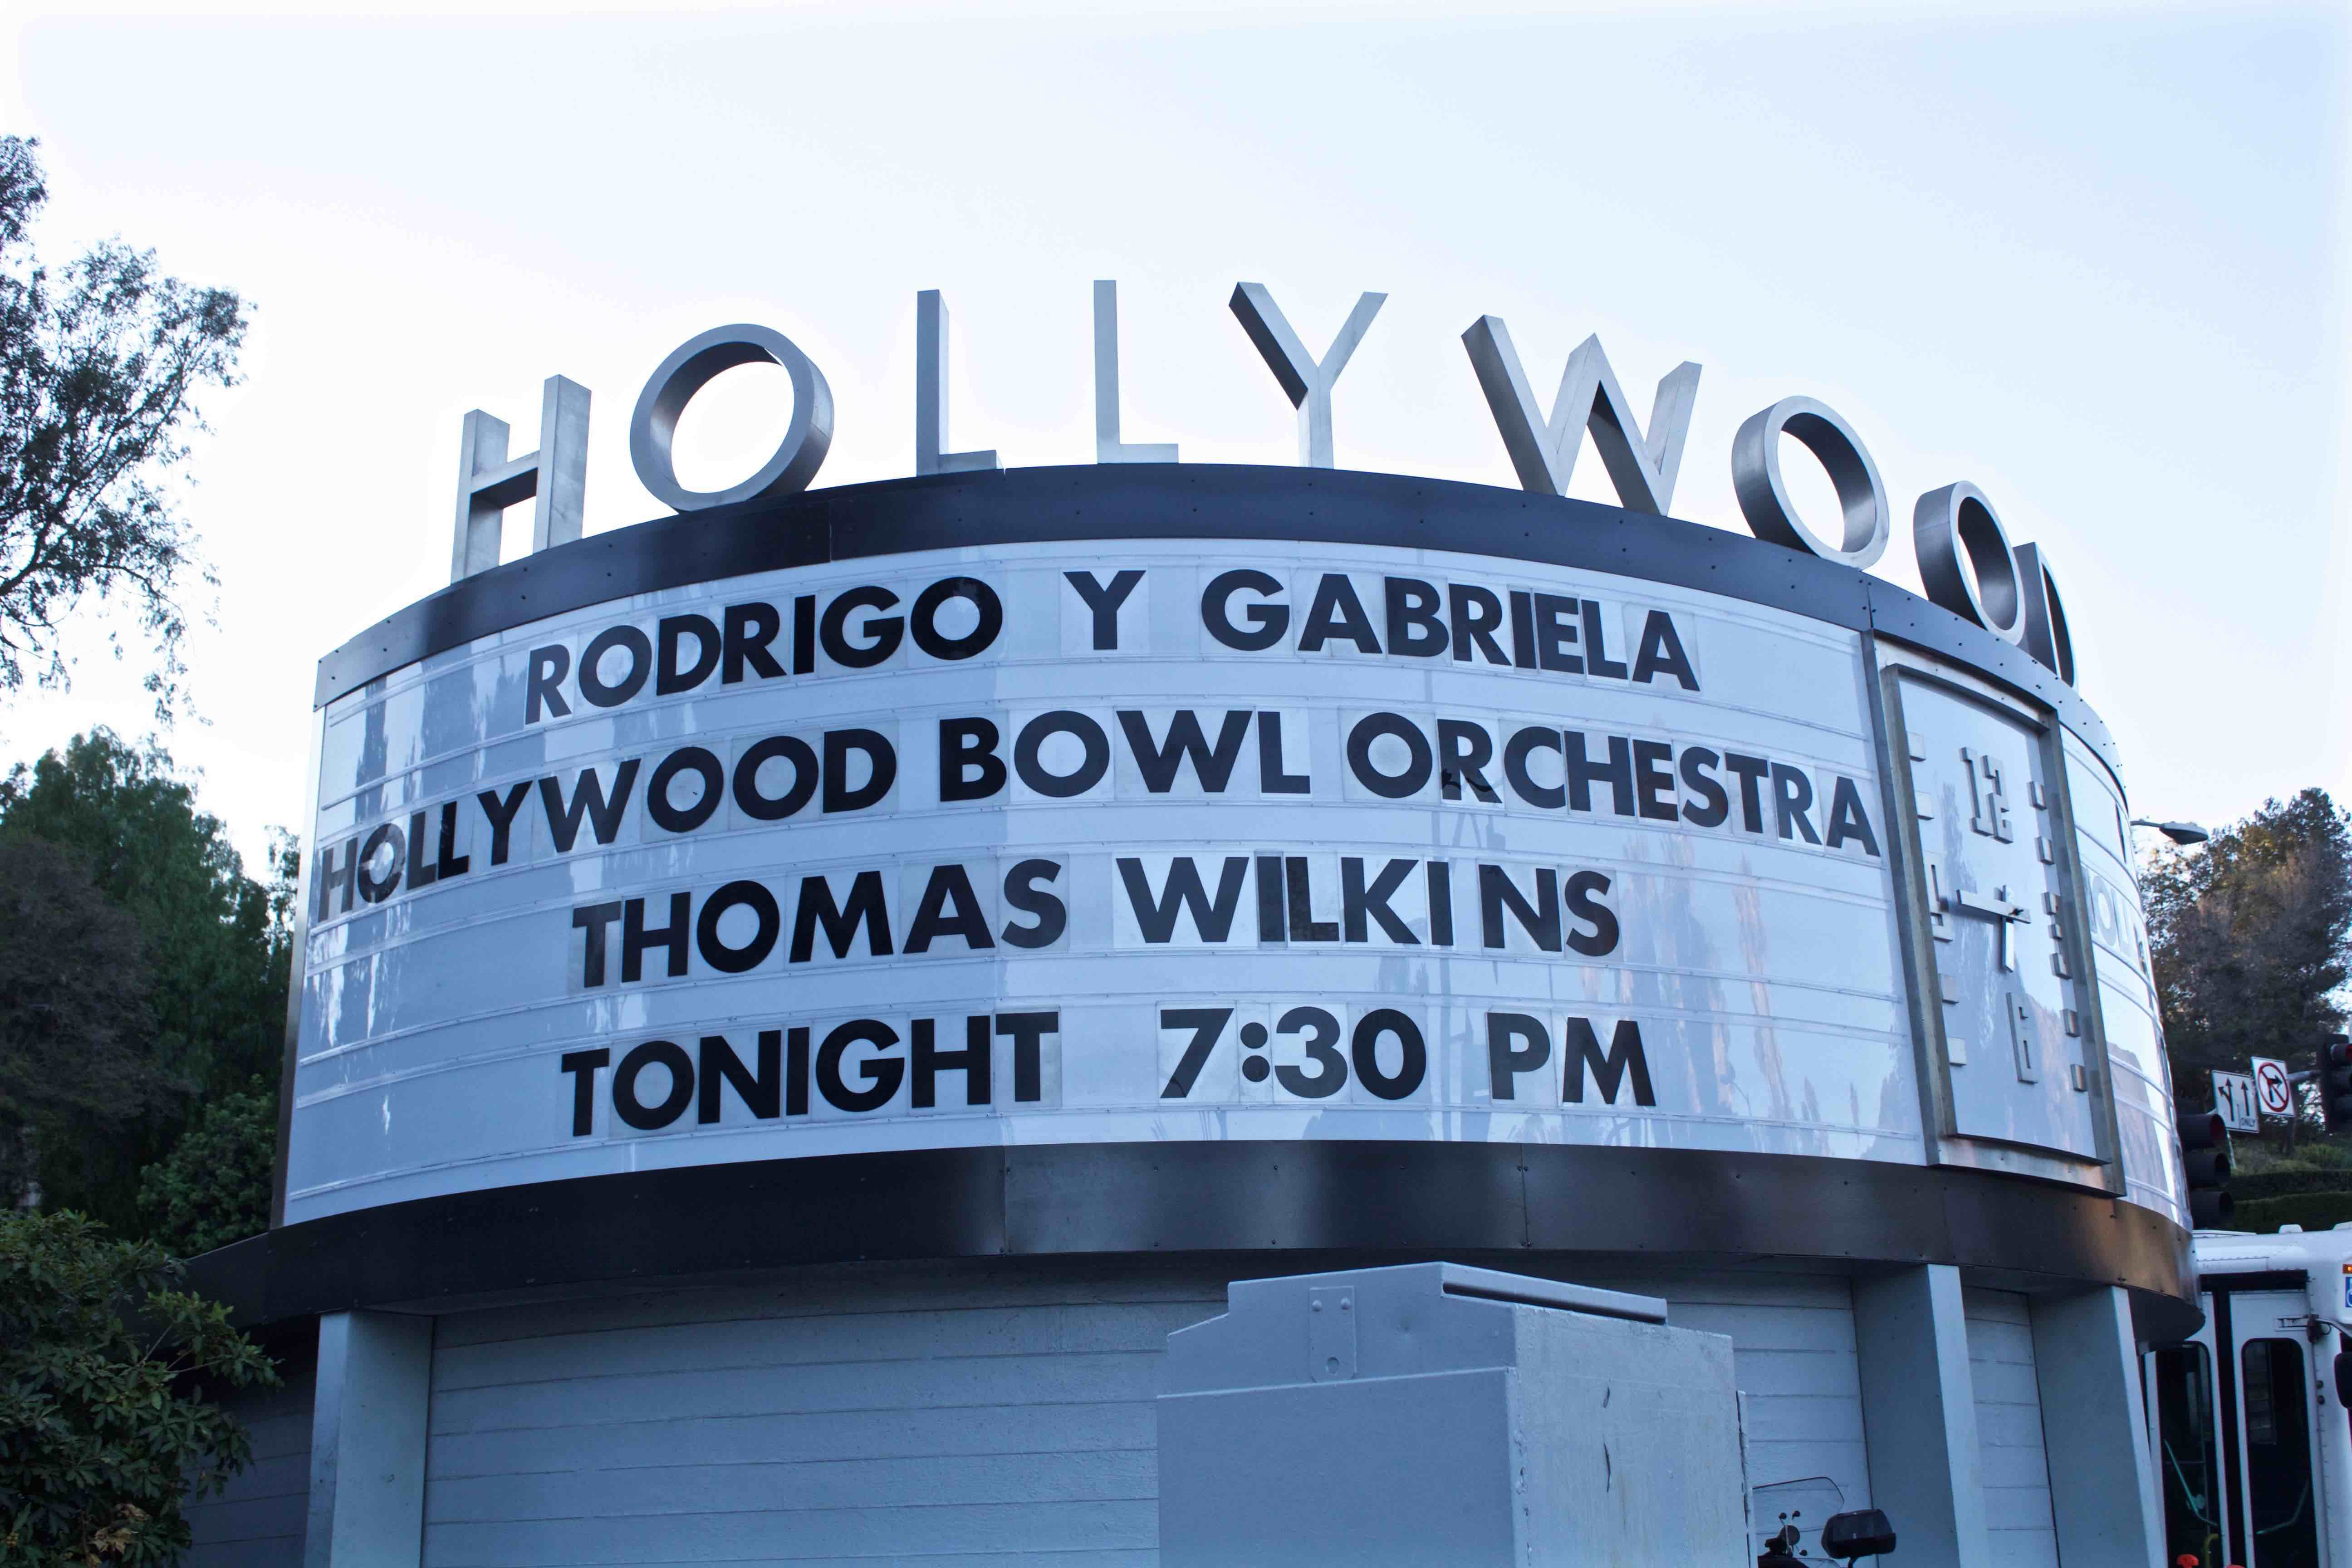 Rodrigo y gabriela shred the hollywood bowl with marty friedman rodrigo y gabriela at hollywood bowl 81416 photo by derrick k hexwebz Choice Image